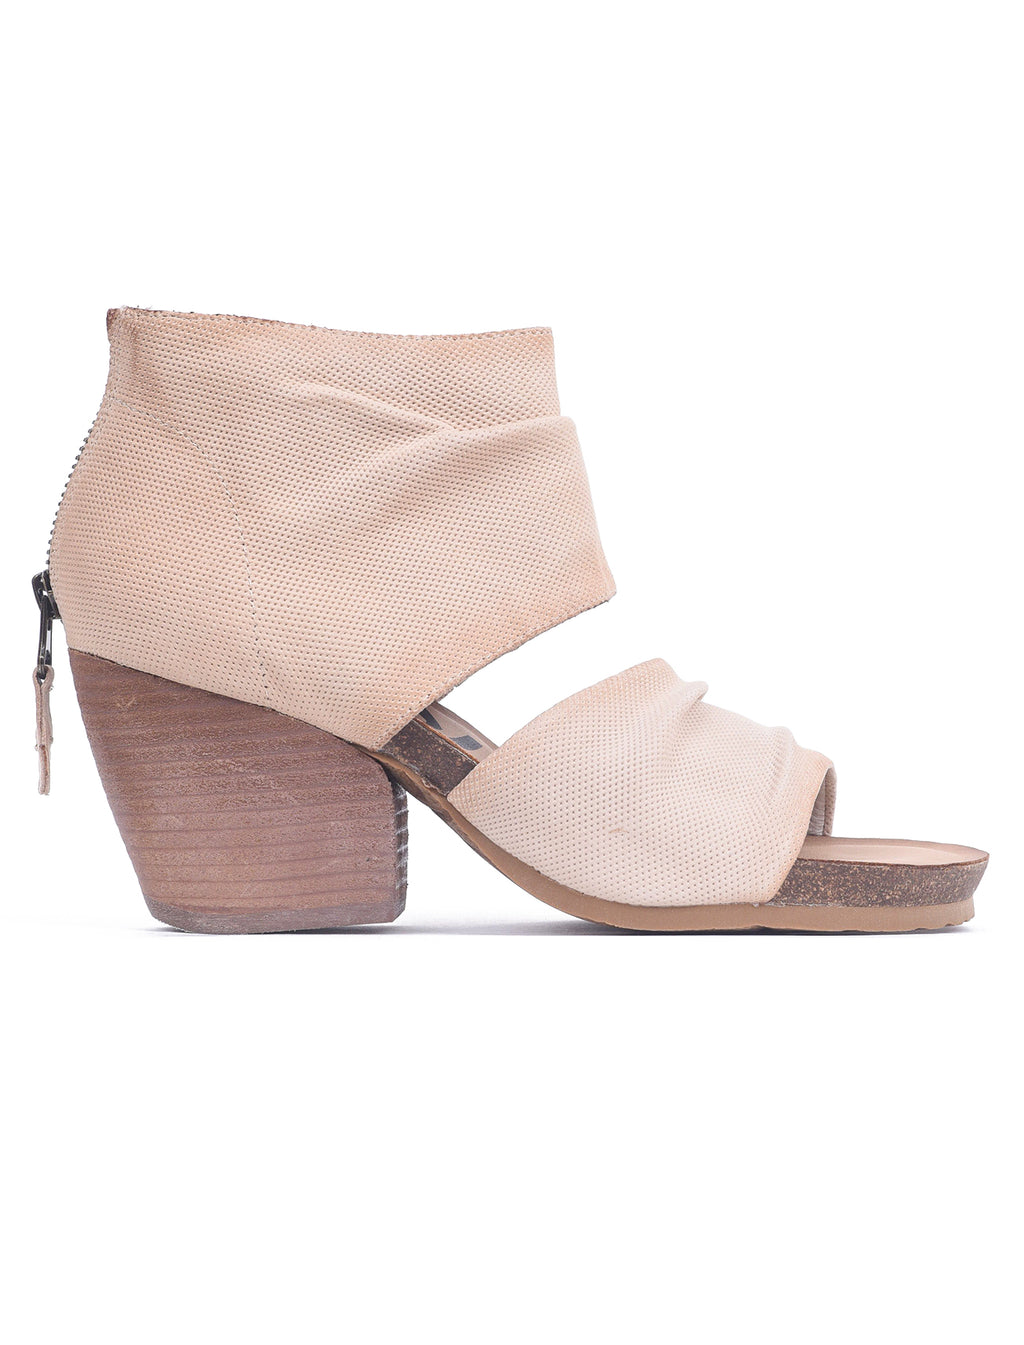 OTBT Shoes Patchouli Heels, Ivory Perf